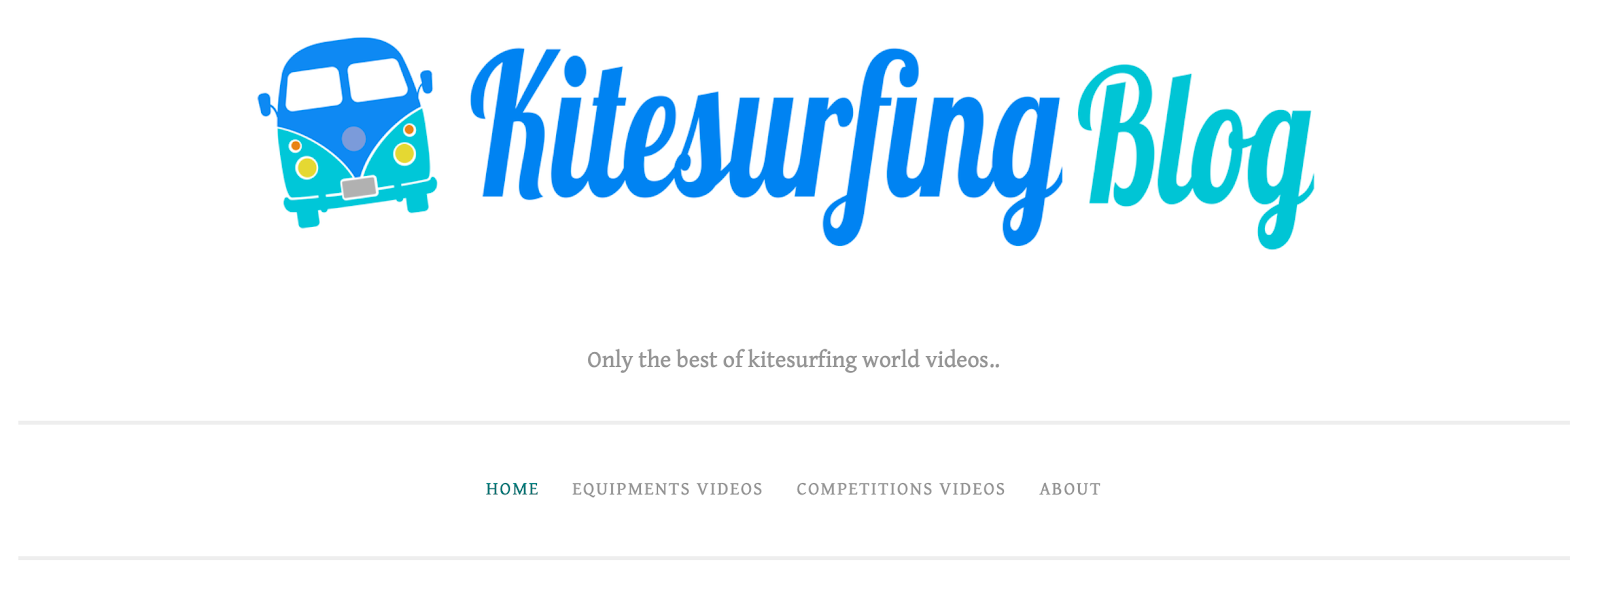 Kitesurfing Blog on WordPress